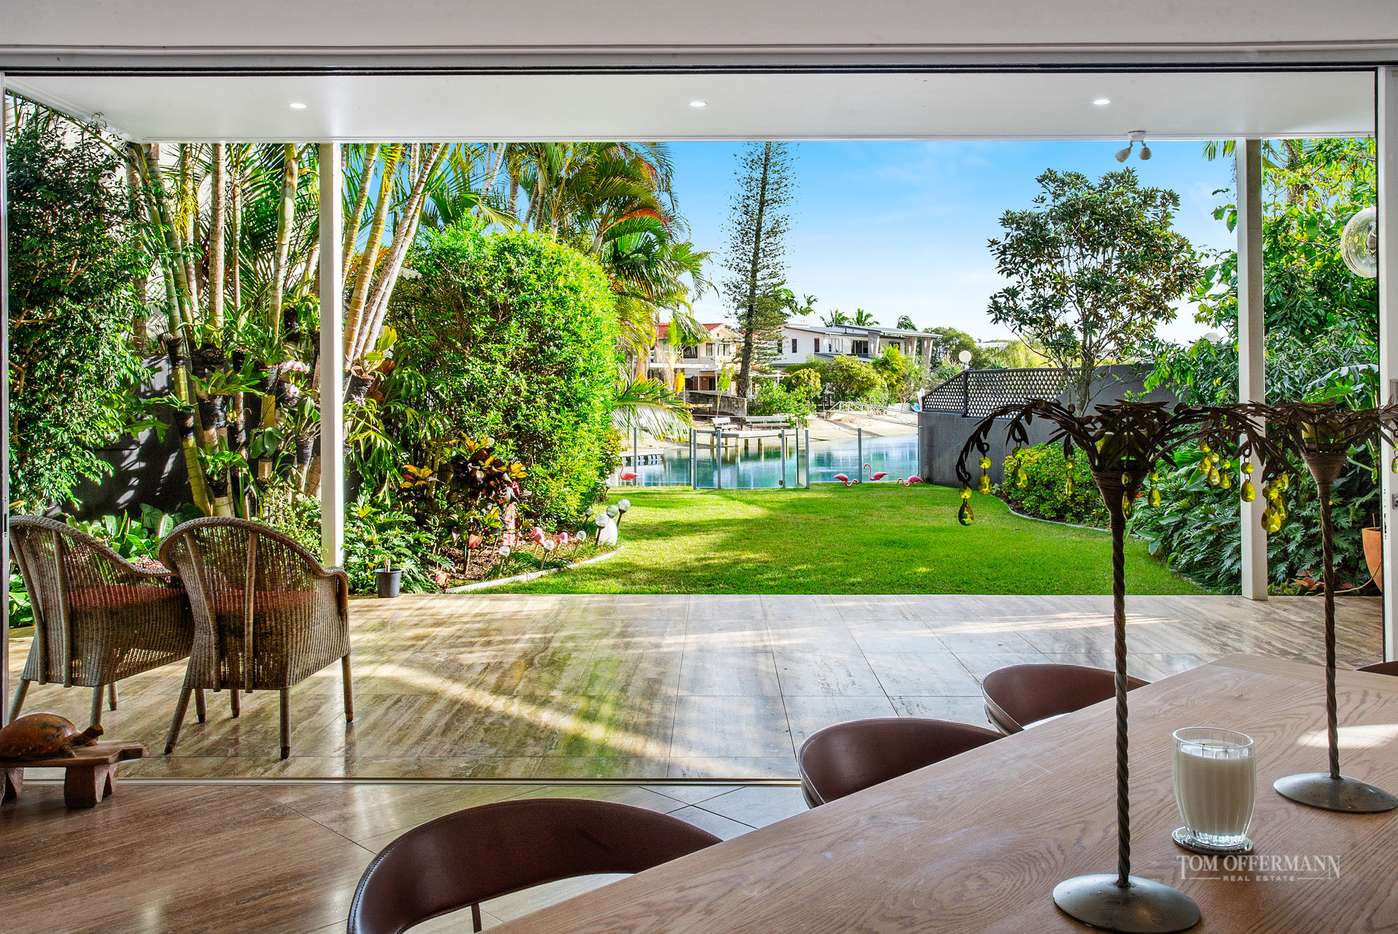 Main view of Homely house listing, 8 Ravenwood Drive, Noosa Heads, QLD 4567